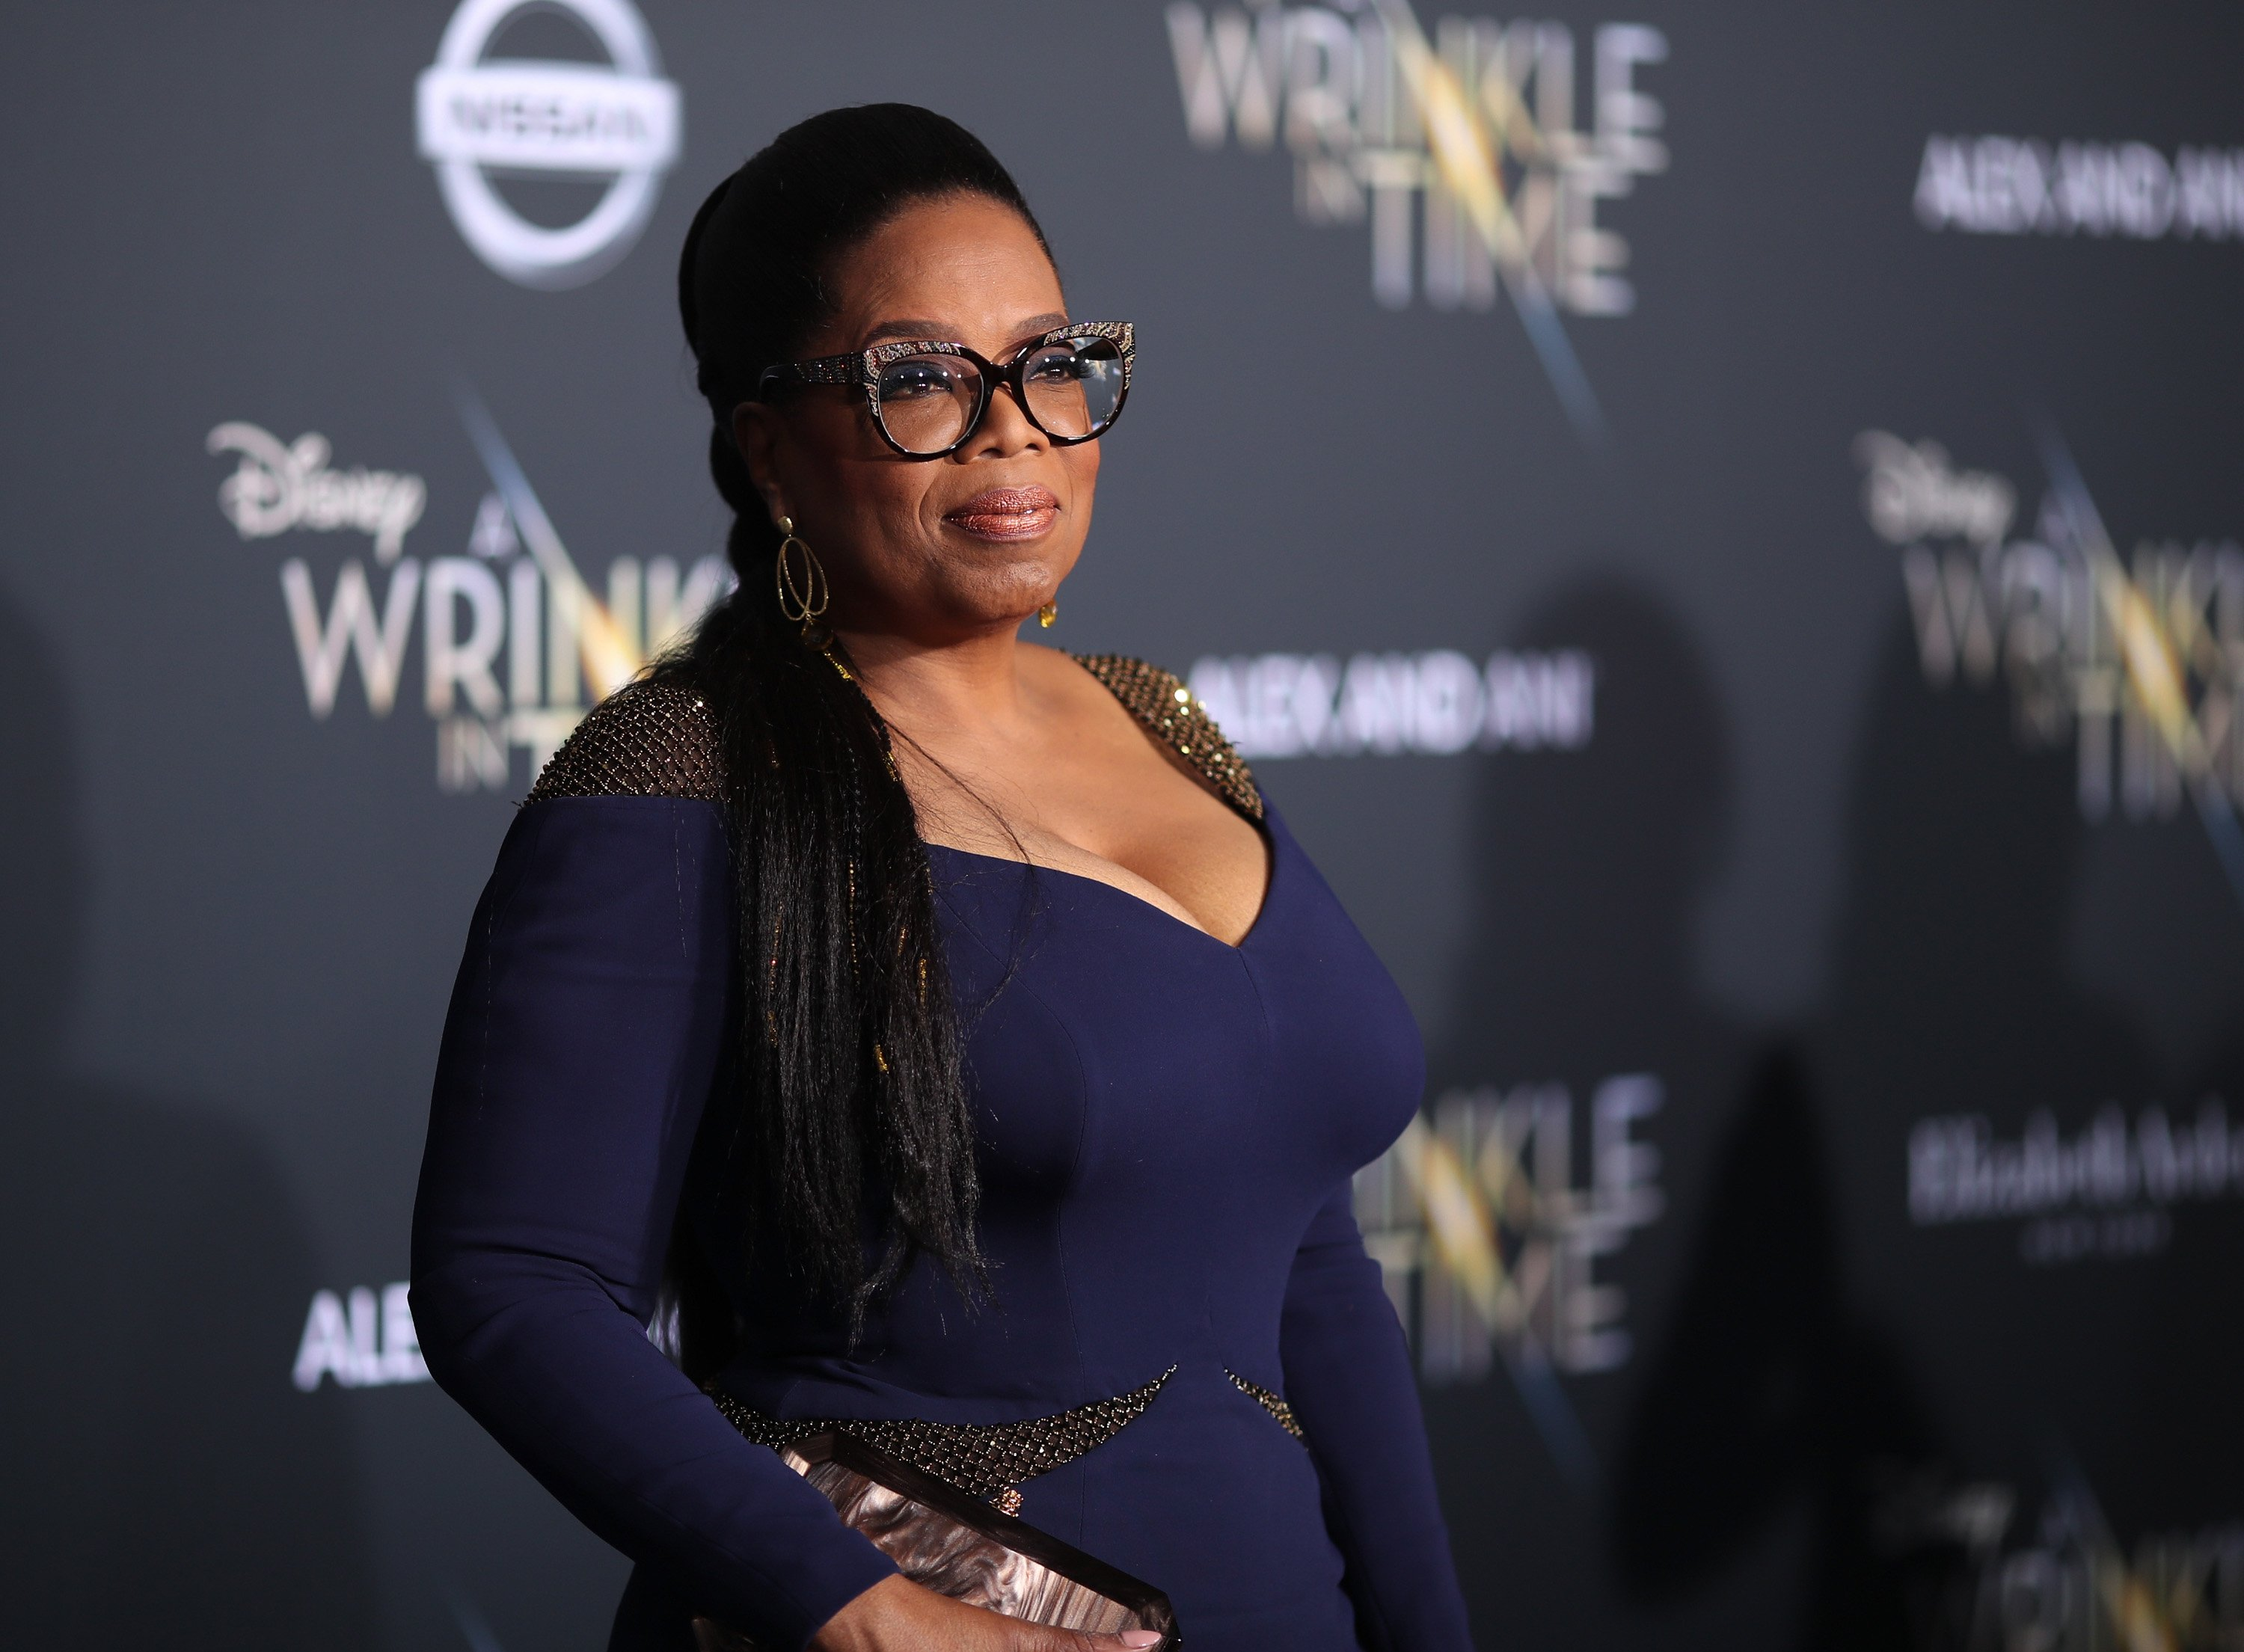 """Oprah Winfrey at the premiere of """"A Wrinkle in Time"""" in February 2018. 